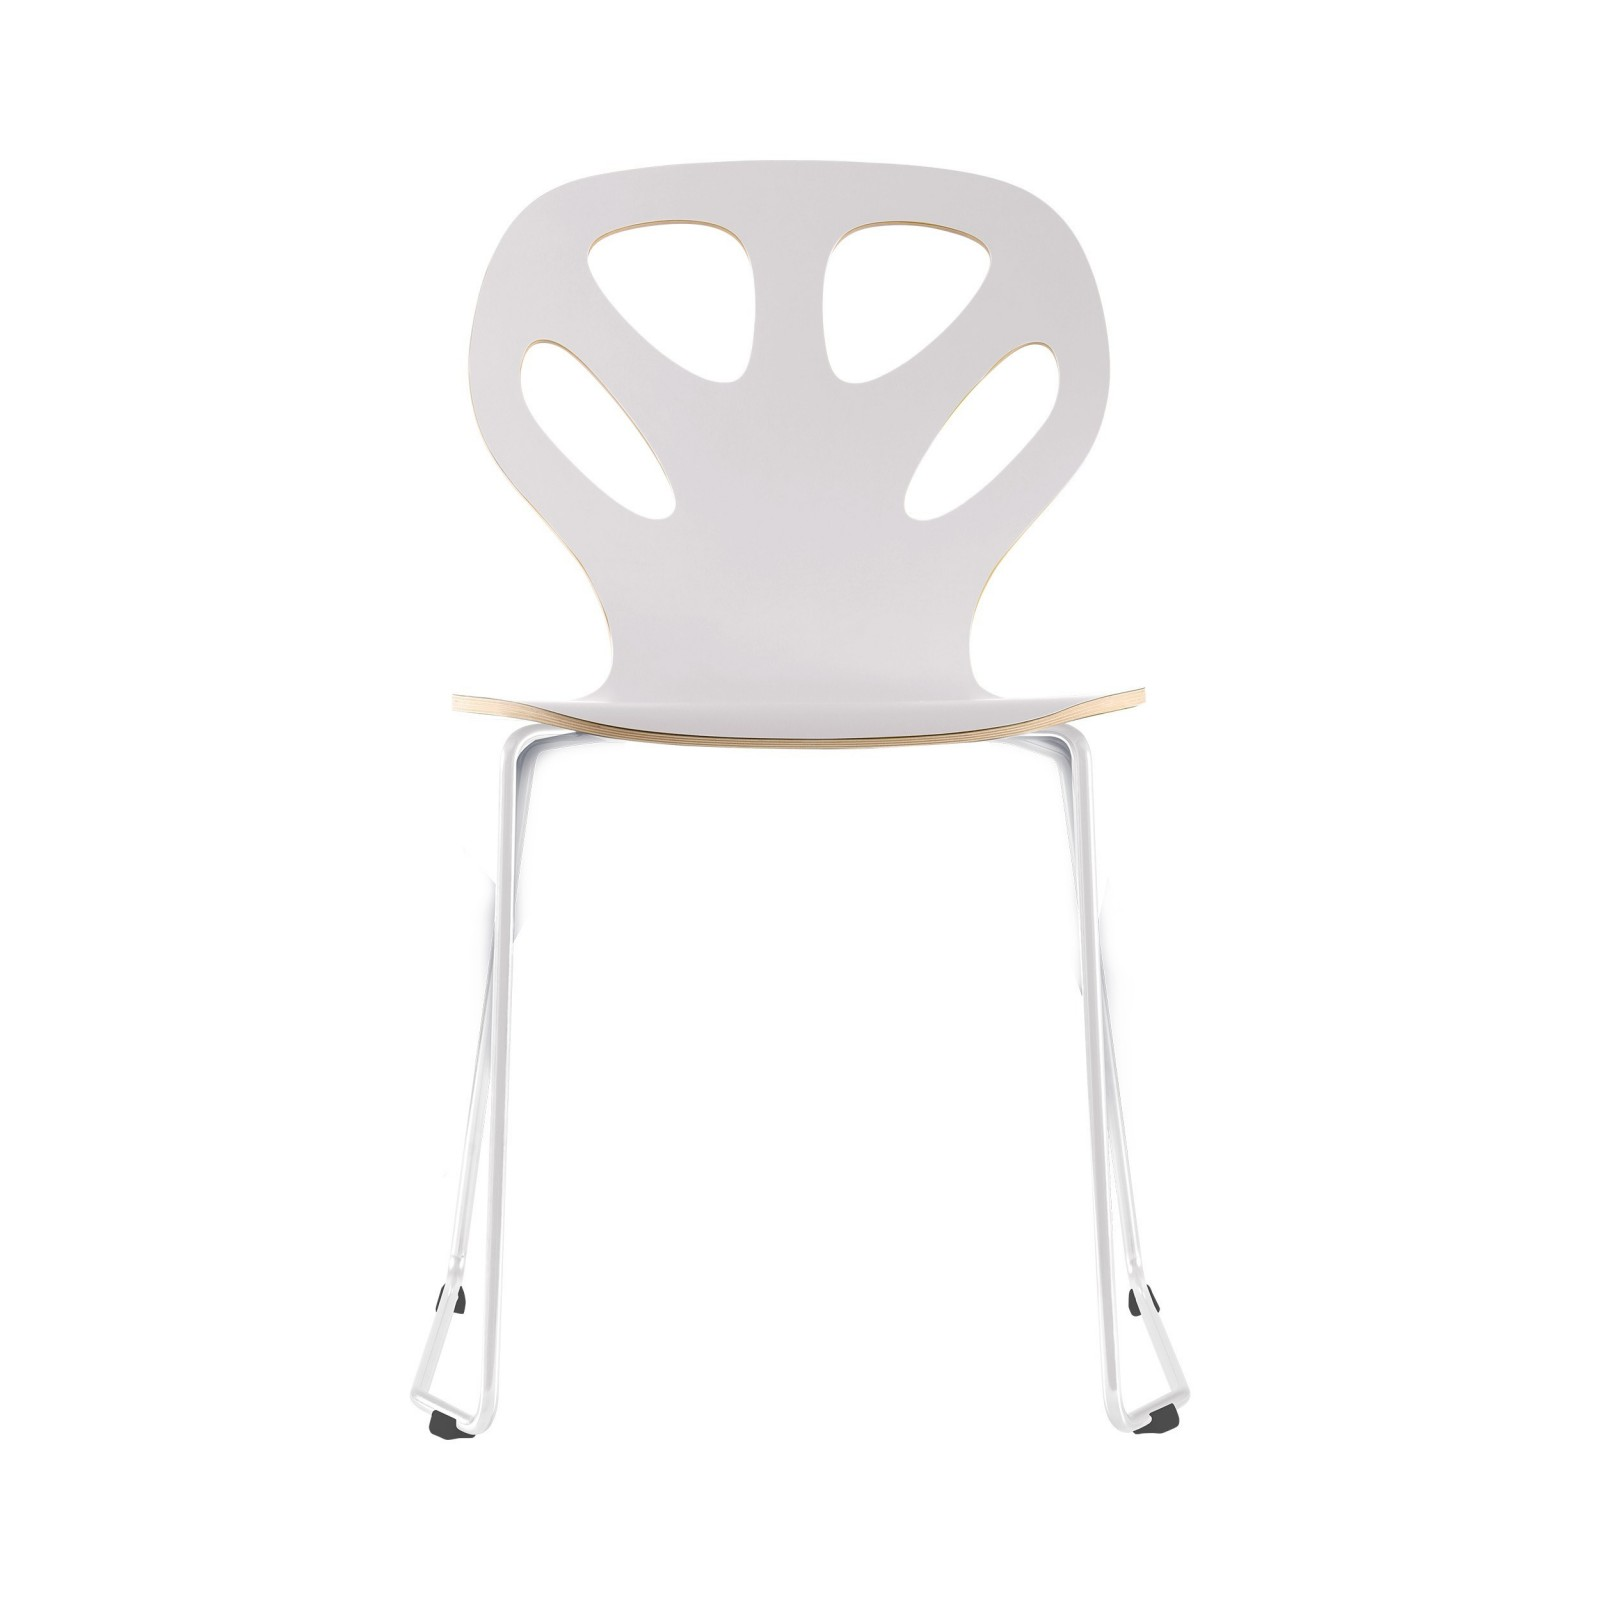 Maple Chair M01 White Ikershopcom